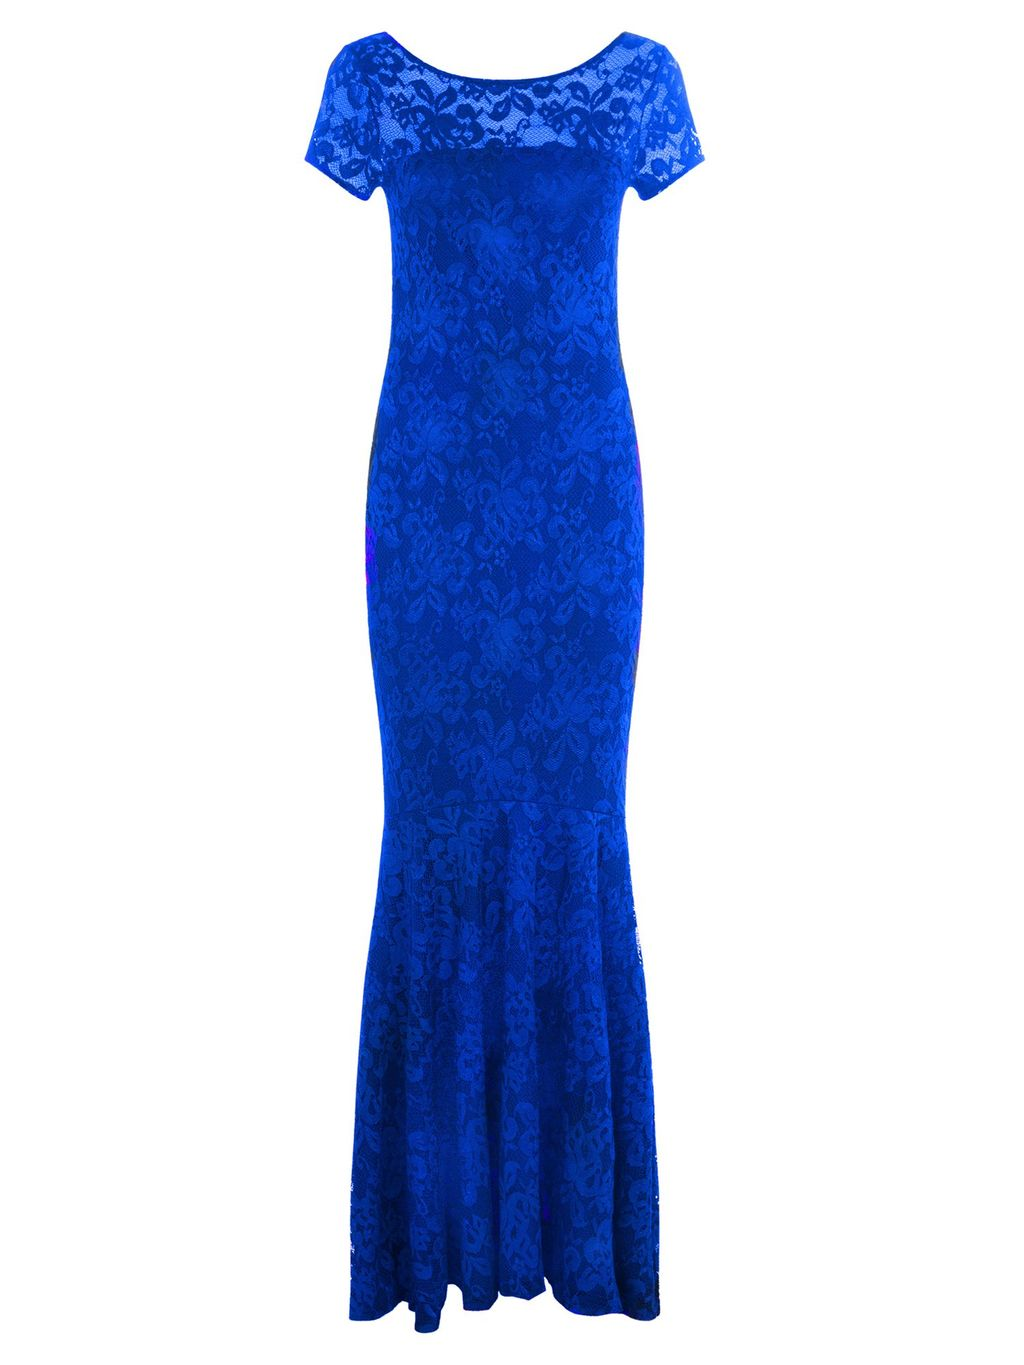 Long Lace Dress With Cap Sleeve, Royal Blue - neckline: round neck; predominant colour: royal blue; occasions: evening, occasion; length: floor length; fit: body skimming; fibres: polyester/polyamide - stretch; style: fishtail; sleeve length: short sleeve; sleeve style: standard; texture group: lace; pattern type: fabric; pattern size: standard; pattern: patterned/print; shoulder detail: sheer at shoulder; season: s/s 2016; wardrobe: event